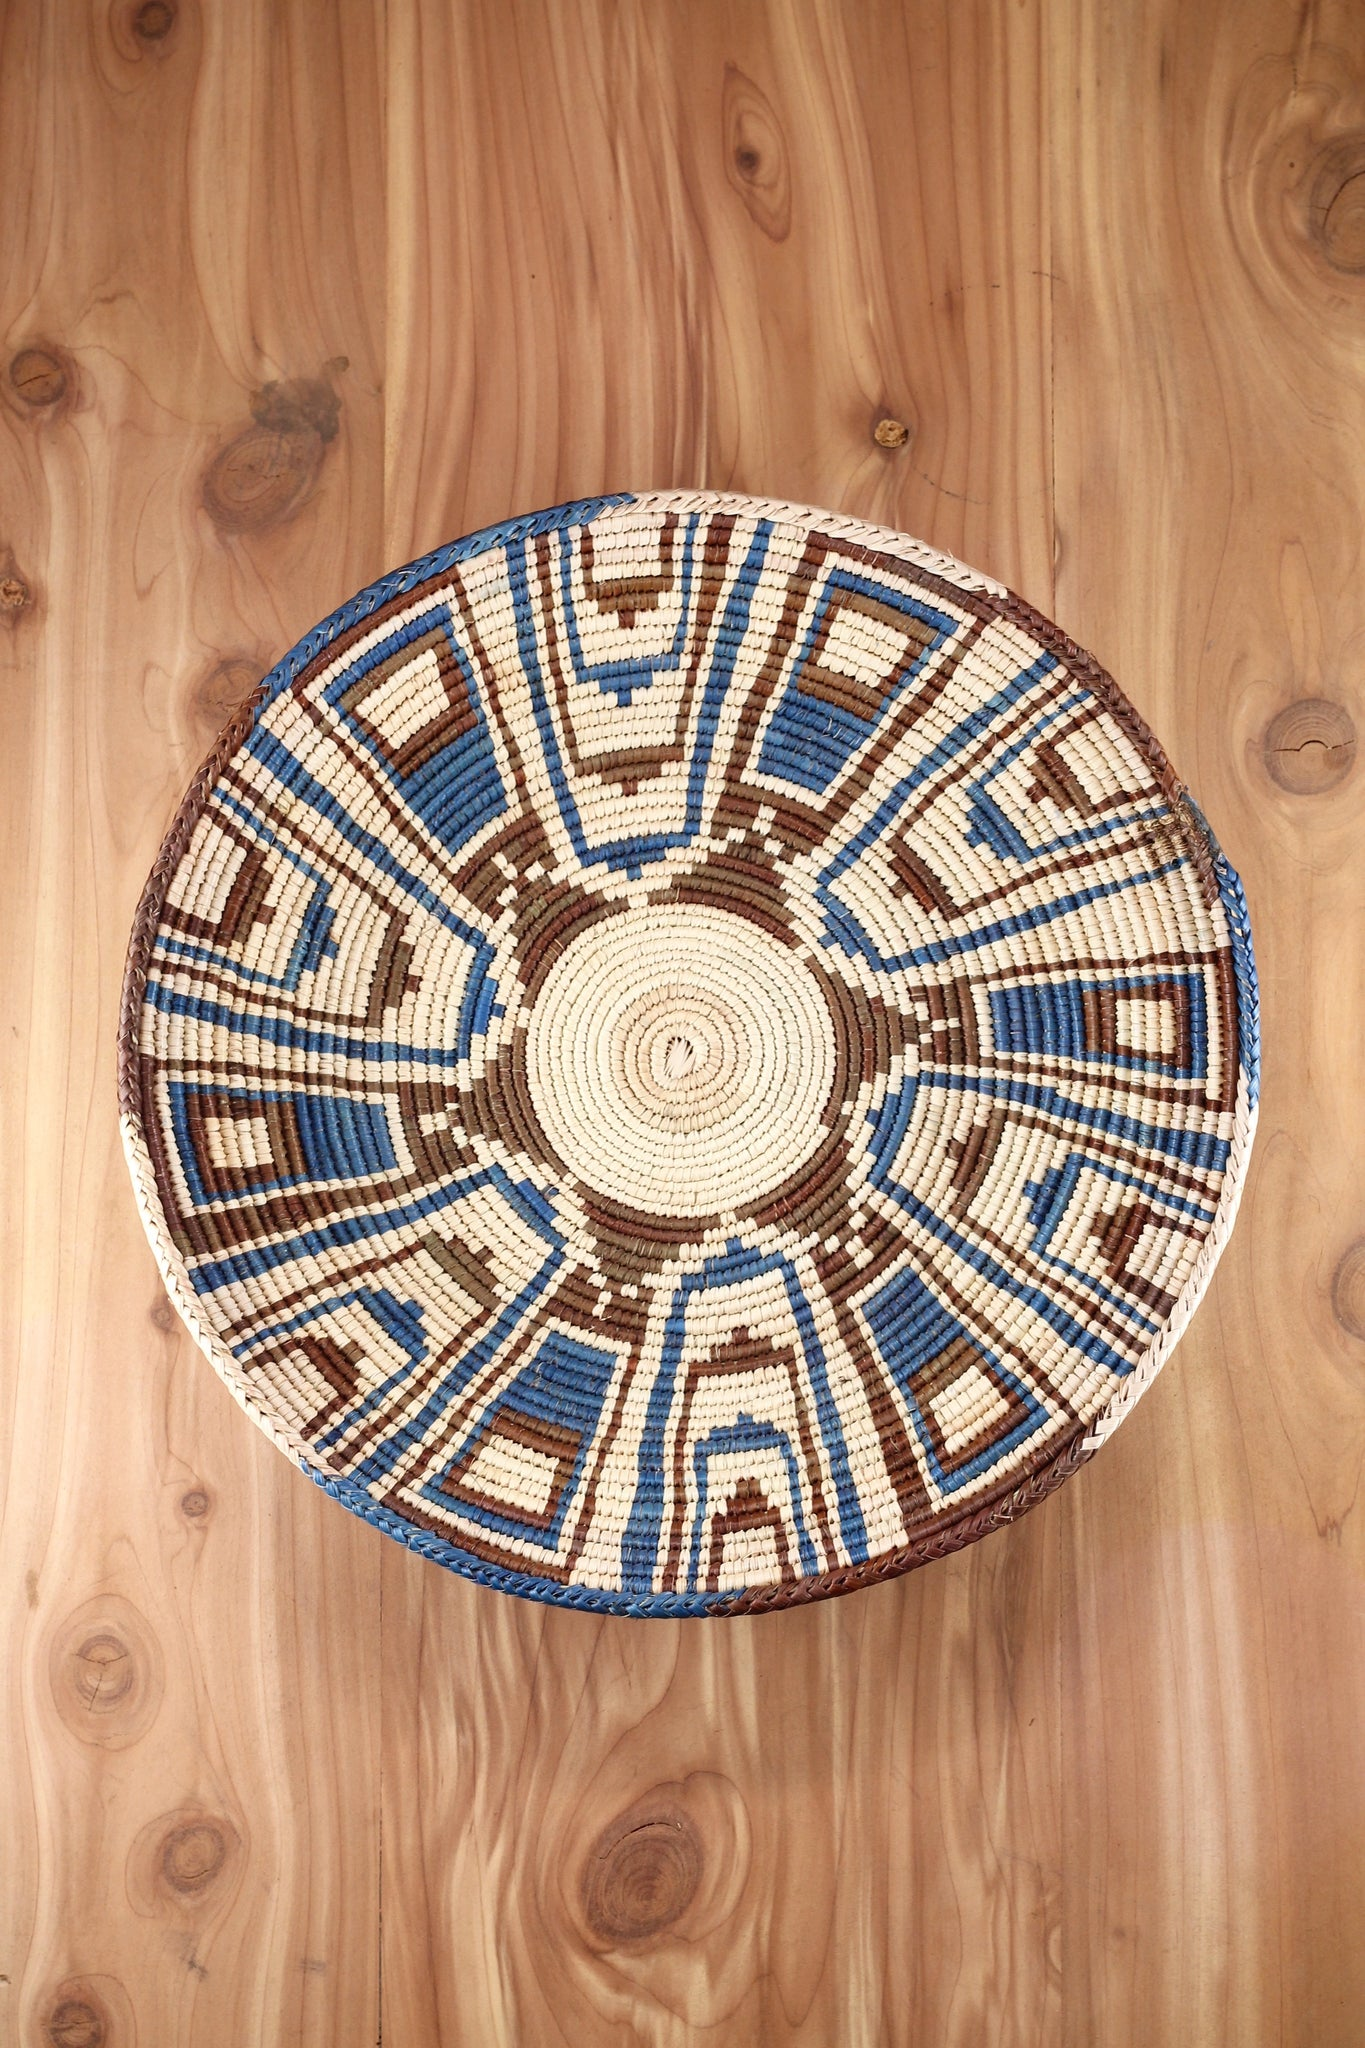 Southwest Basket ~ Handcrafted from tightly woven palm leaves. Blue and Brown Tribal Design.   Perfect for storing treasures and trinkets or adds southwest flair to any room as a centerpiece or wall art.  FREE SHIPPING RedRiverIron.com